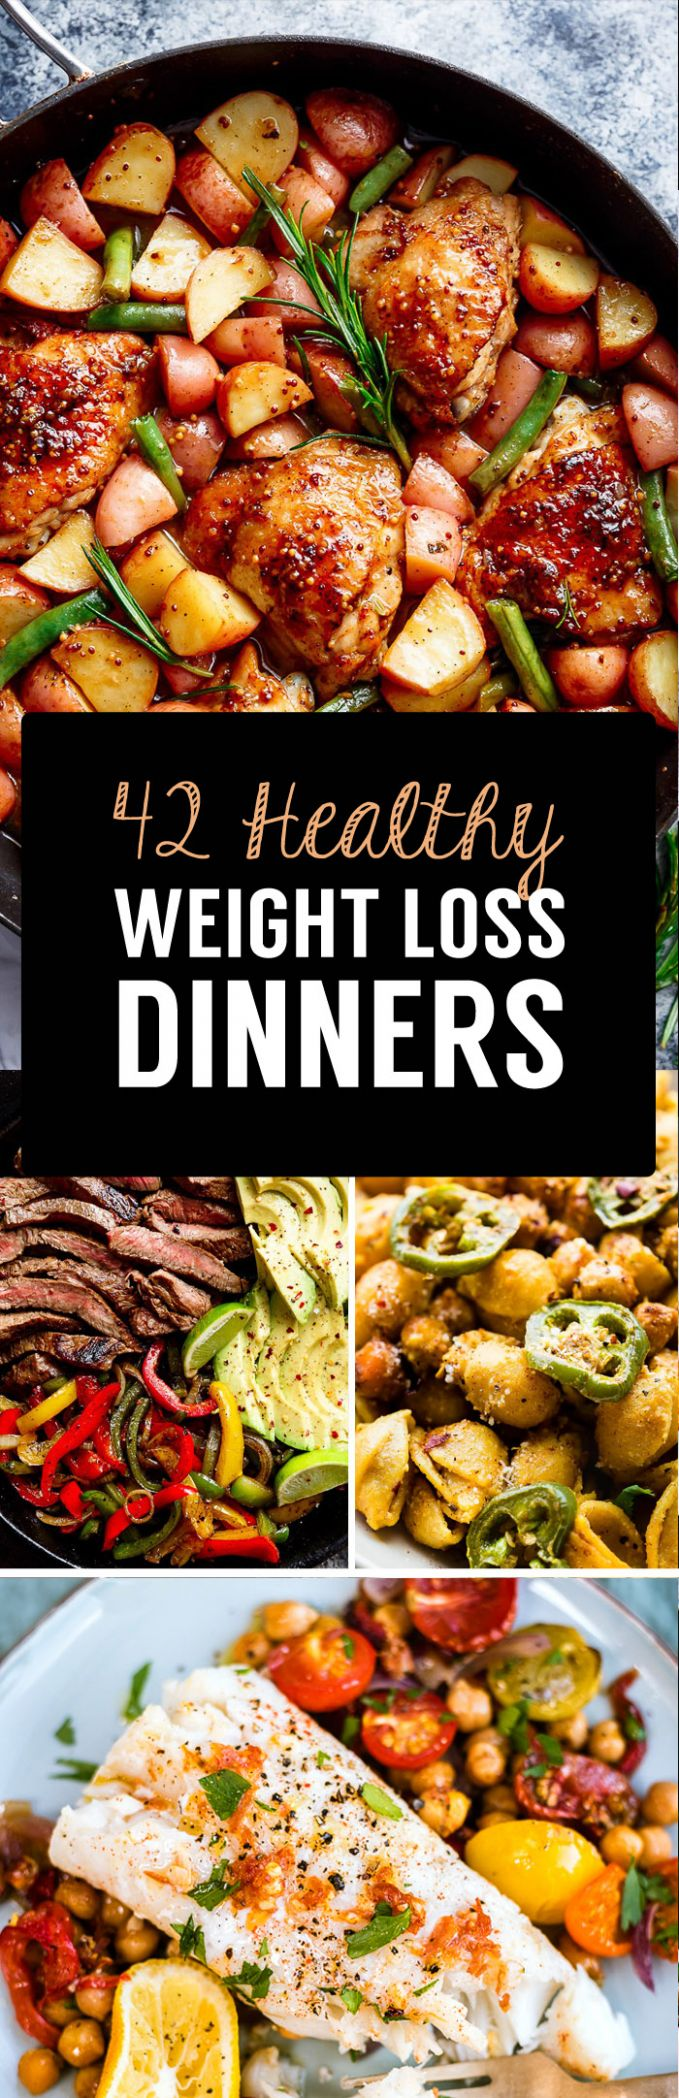 10 Weight Loss Dinner Recipes That Will Help You Shrink Belly Fat ..